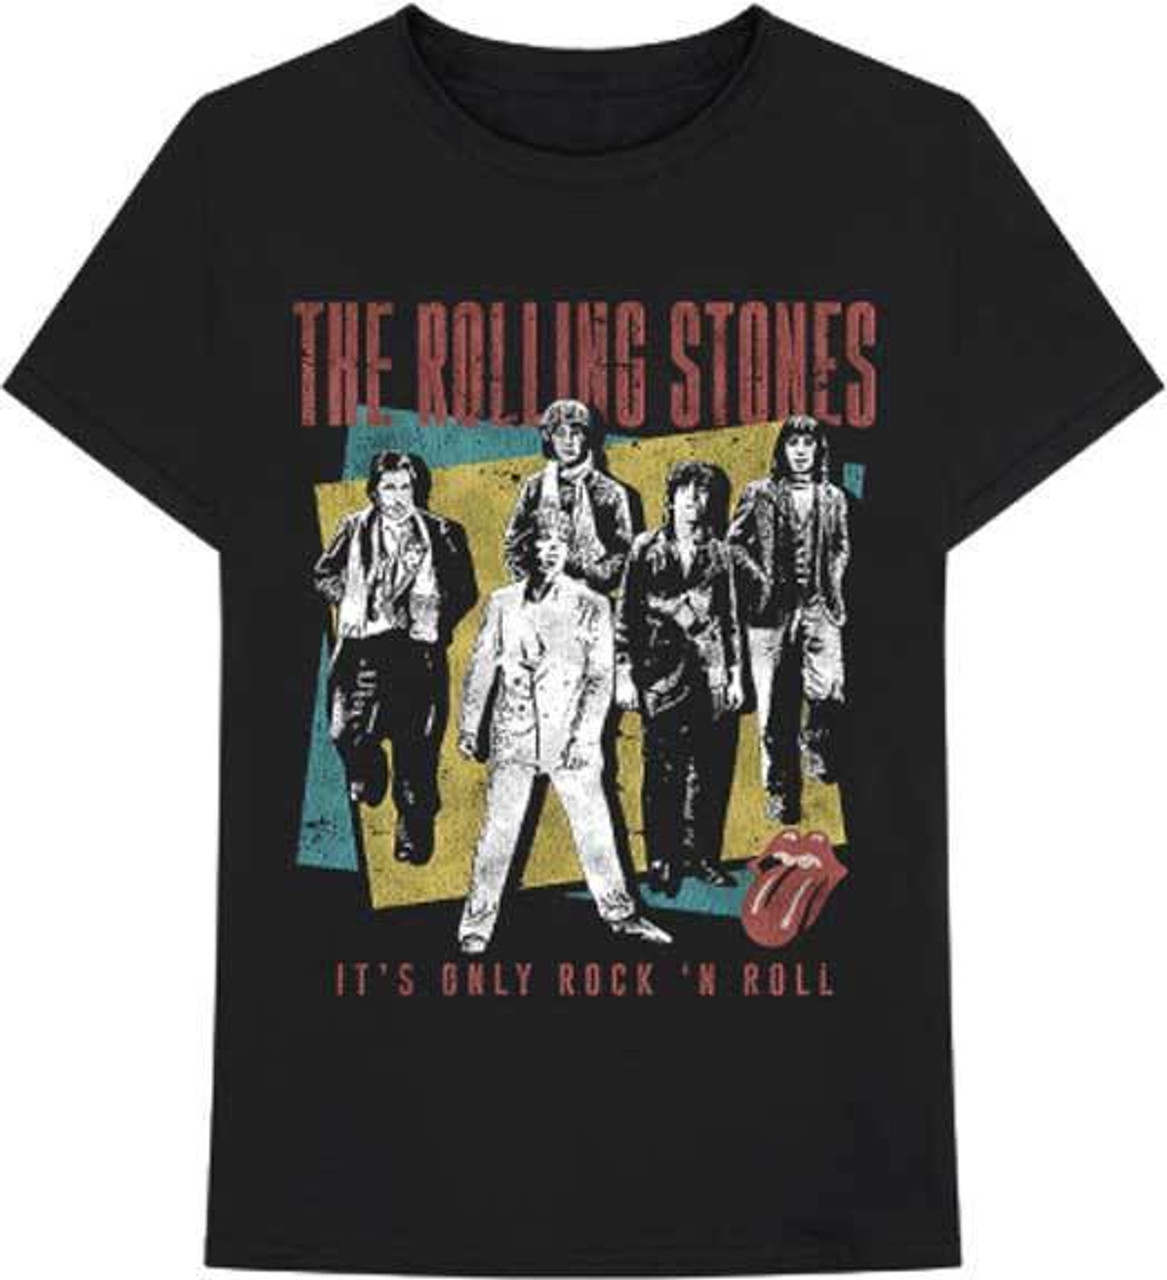 872a93186 The Rolling Stones Its Only Rock and Roll Classic Music Band T Shirt  31270912 - Fearless Apparel